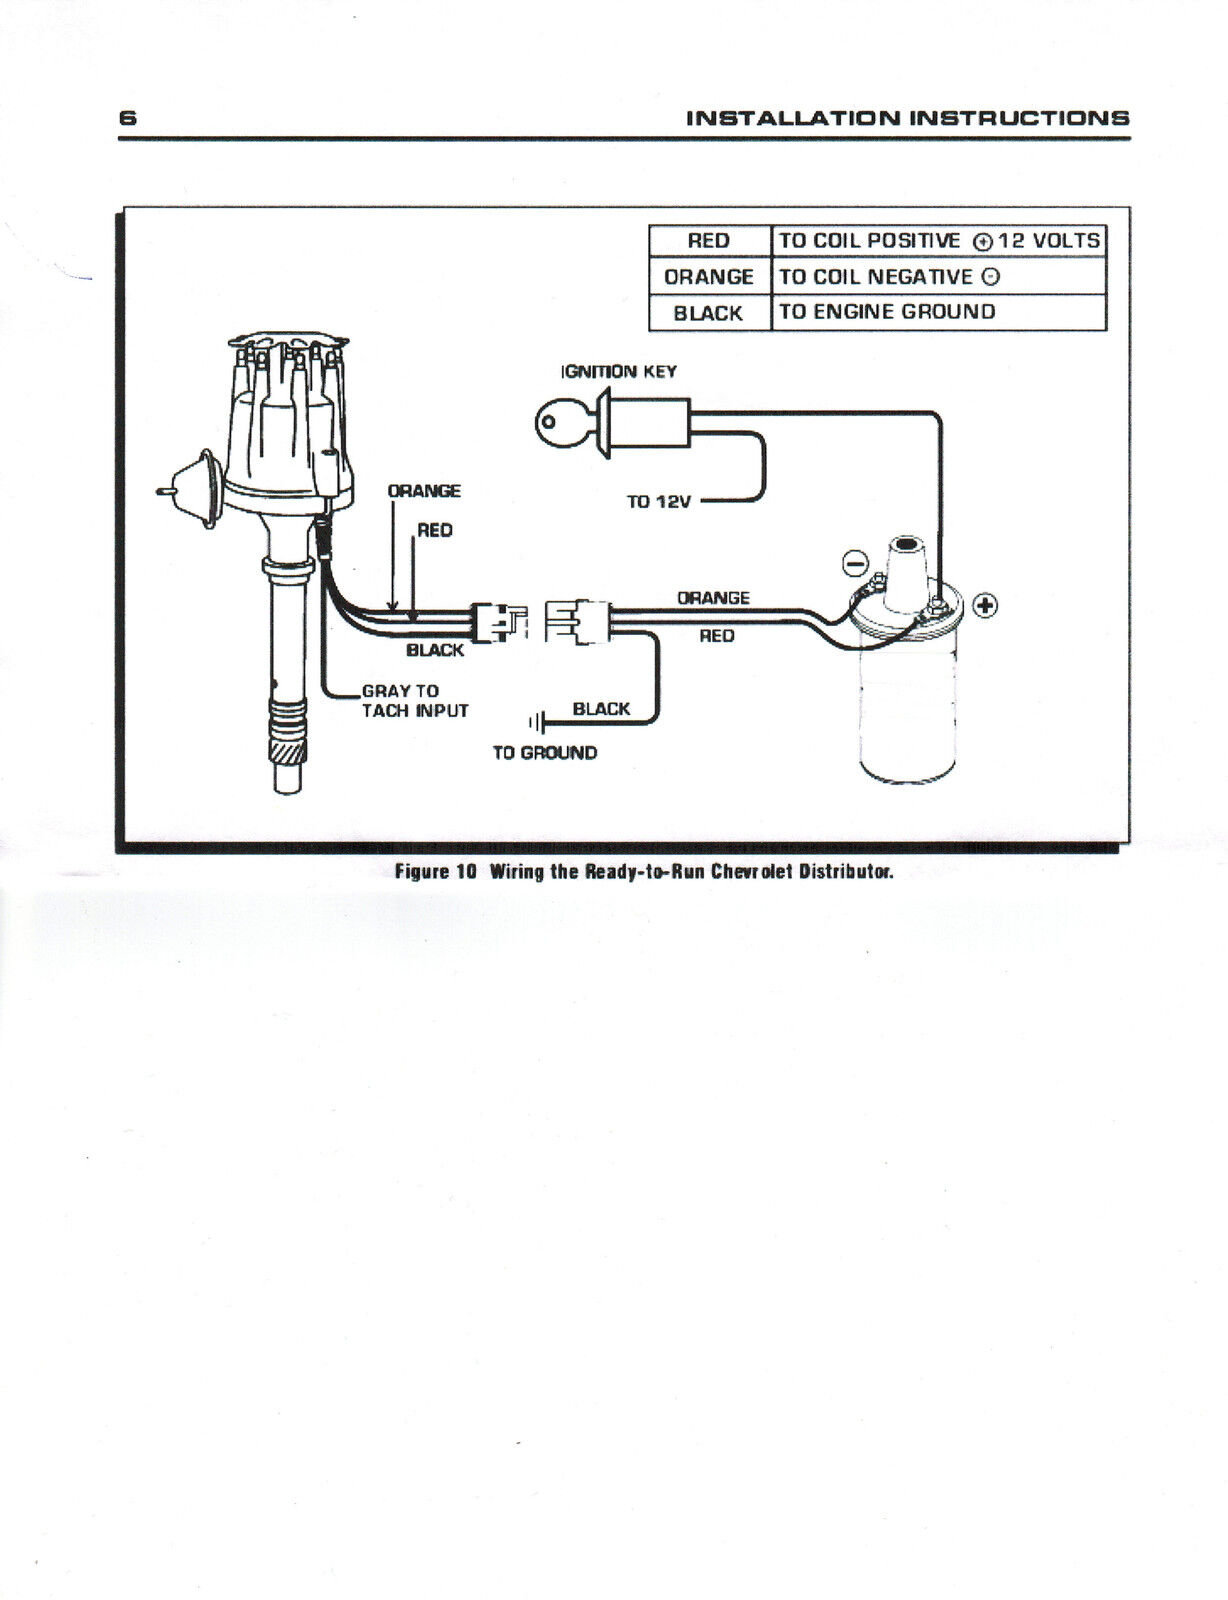 small cap FORD INLINE 6 Cylinder 170 200 250 PRO _57?resize\\\=665%2C866\\\&ssl\\\=1 pro comp 8000 distributor wiring diagram wiring diagrams pro comp distributor wiring diagram at gsmx.co